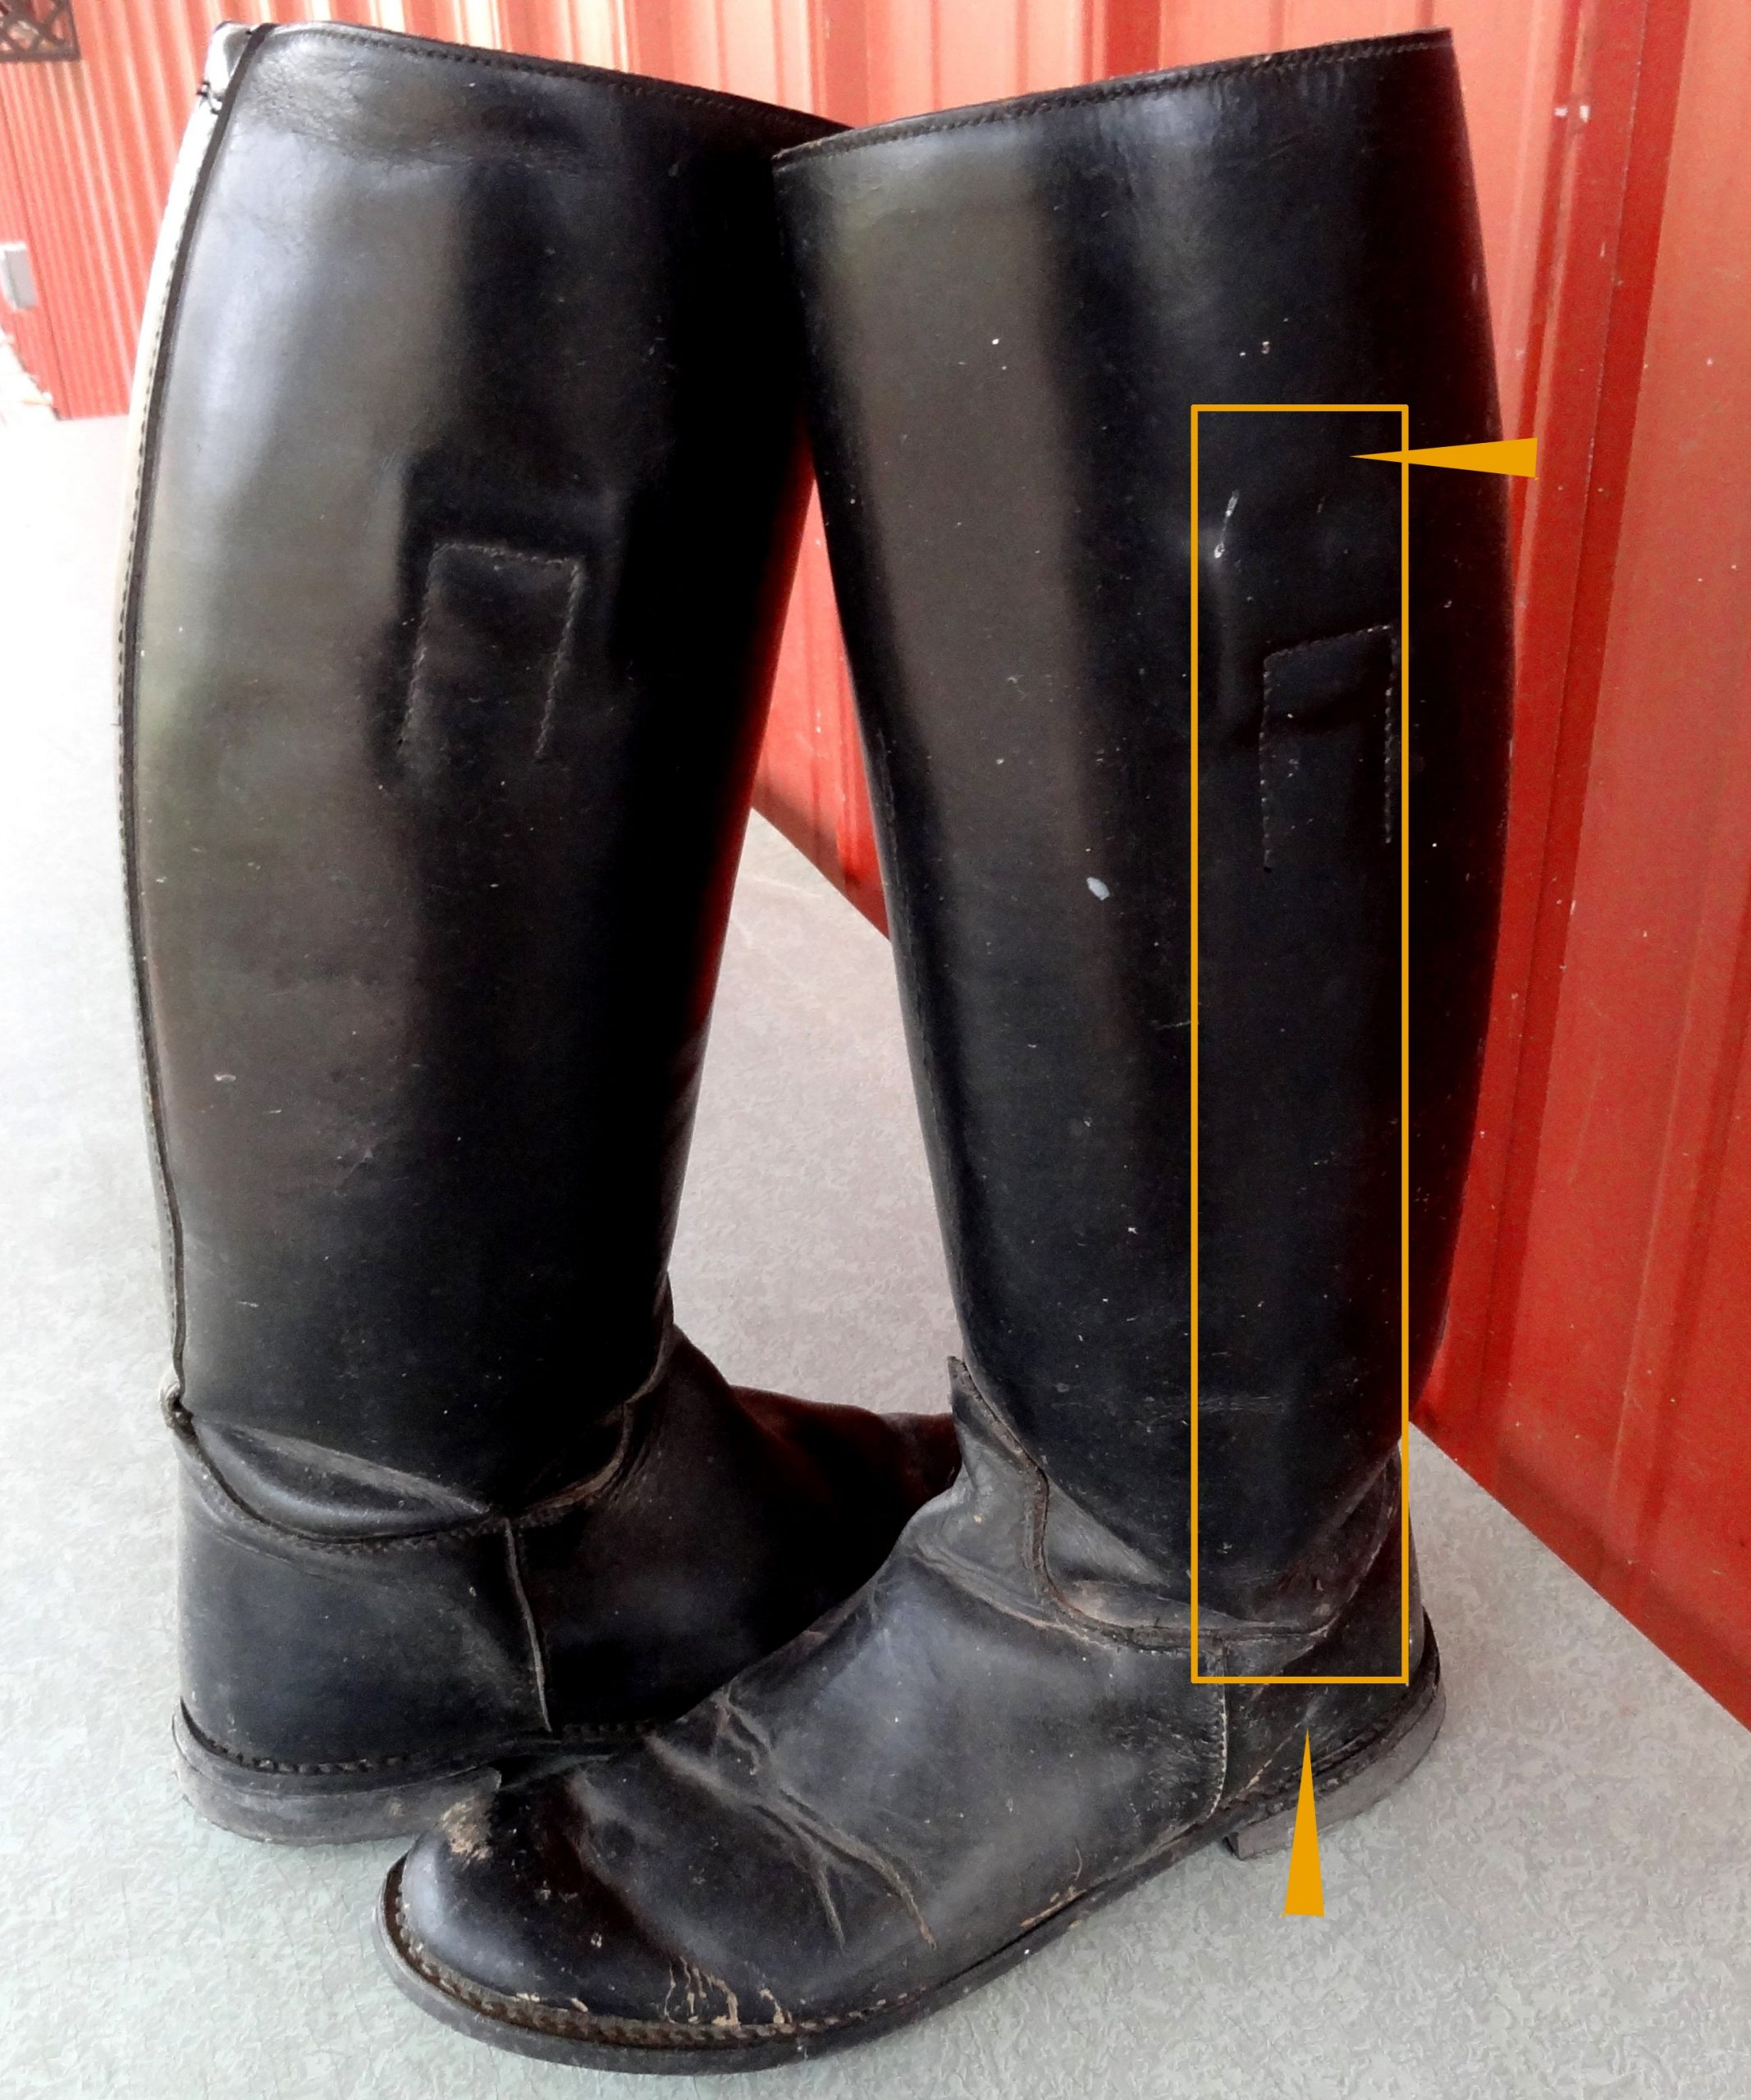 A photo of boots showing where they are braced.